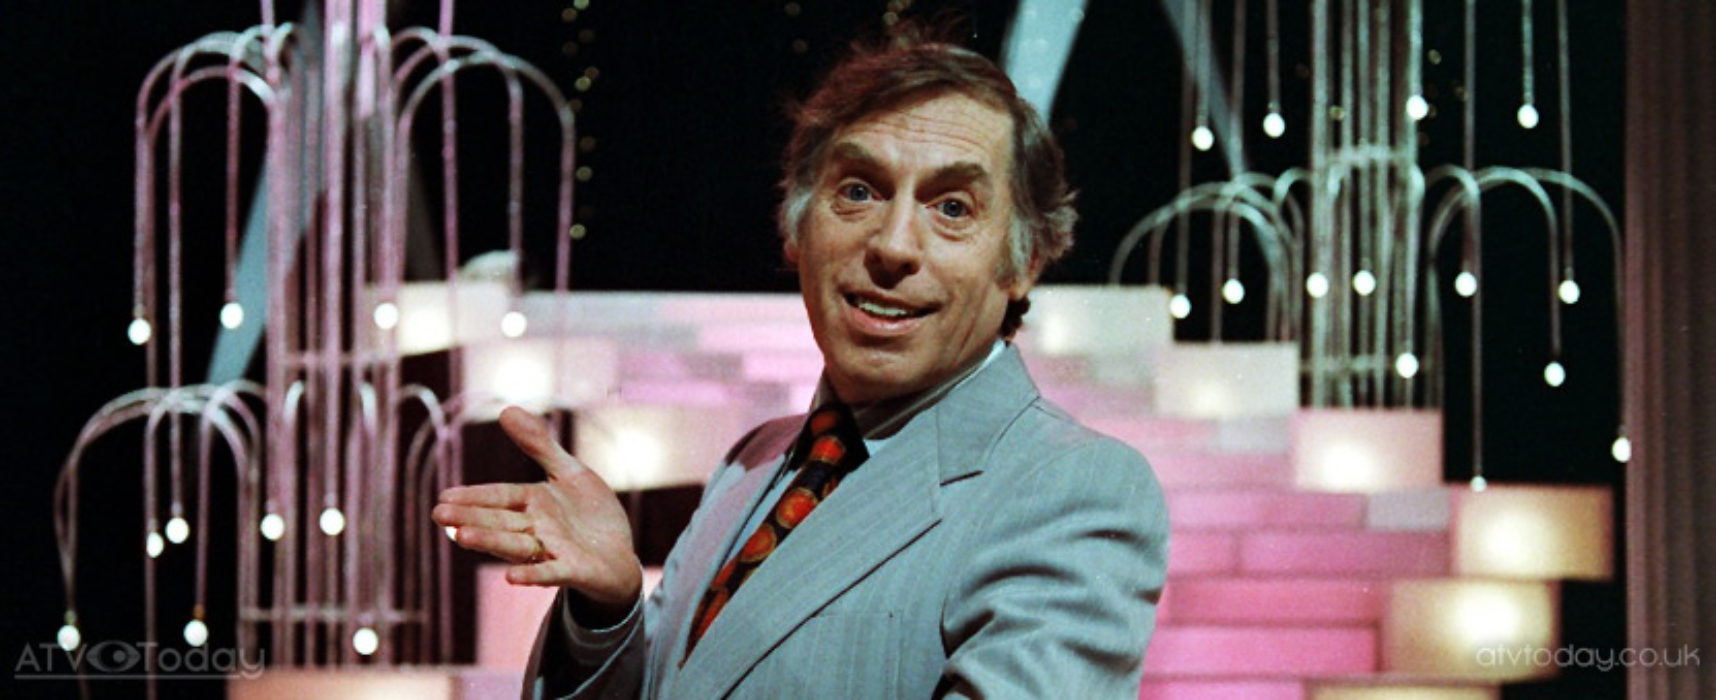 The life and comedy of Larry Grayson